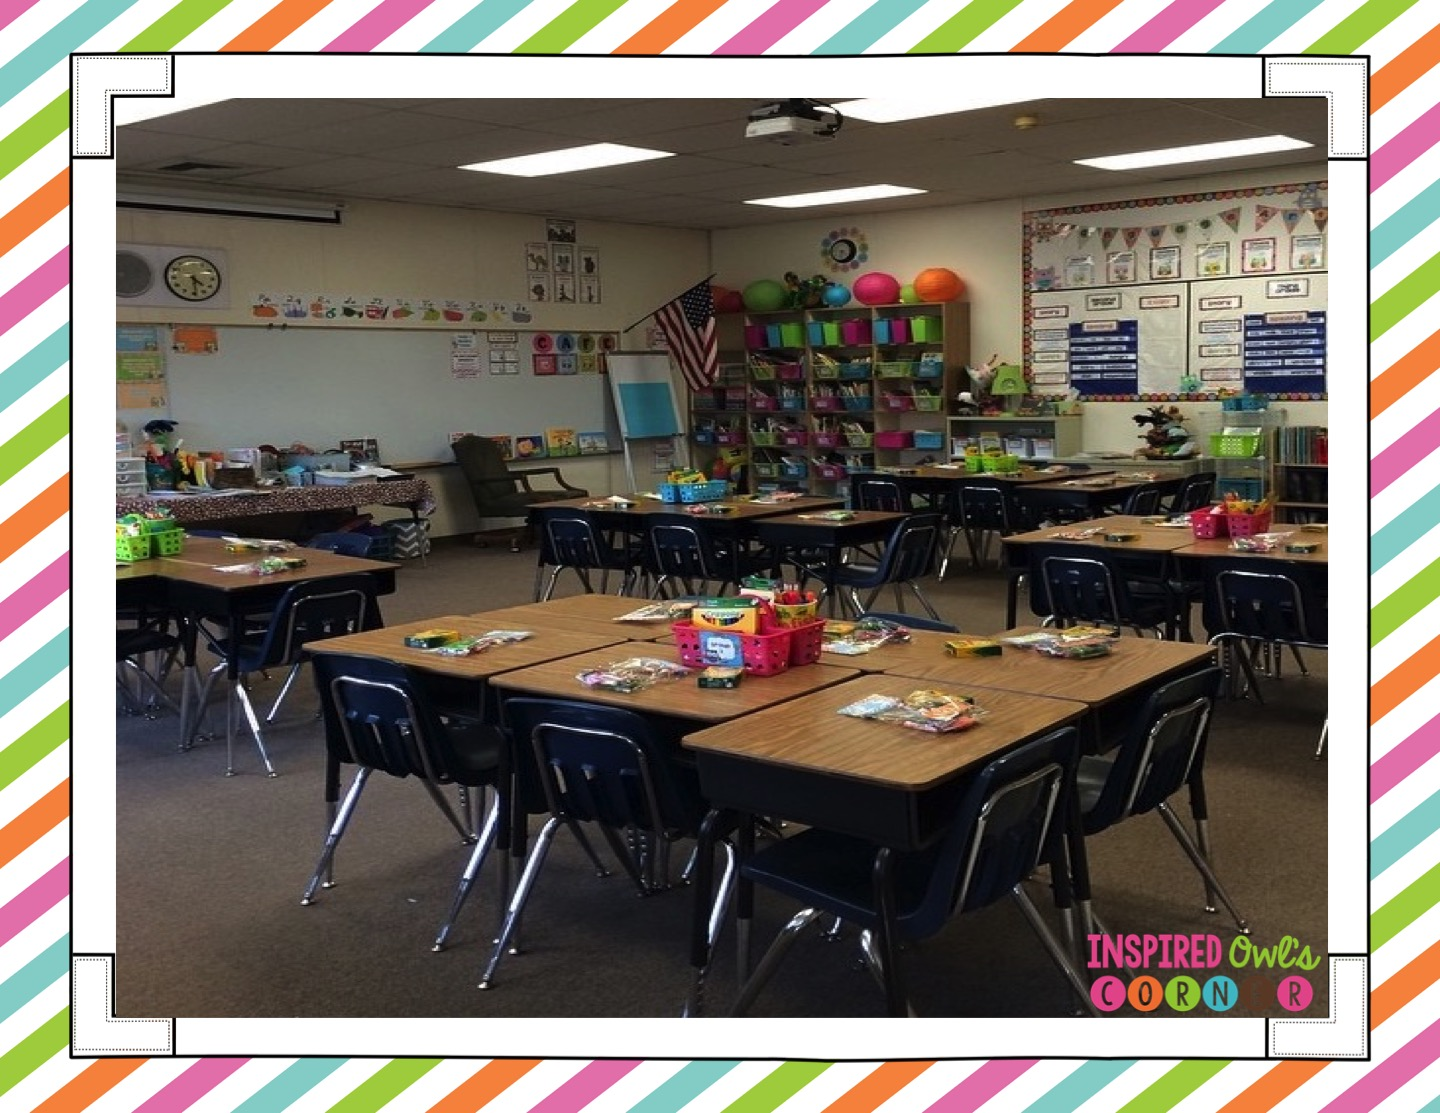 Classroom Decor On A Budget : Classroom decor on a budget inspired owl s corner